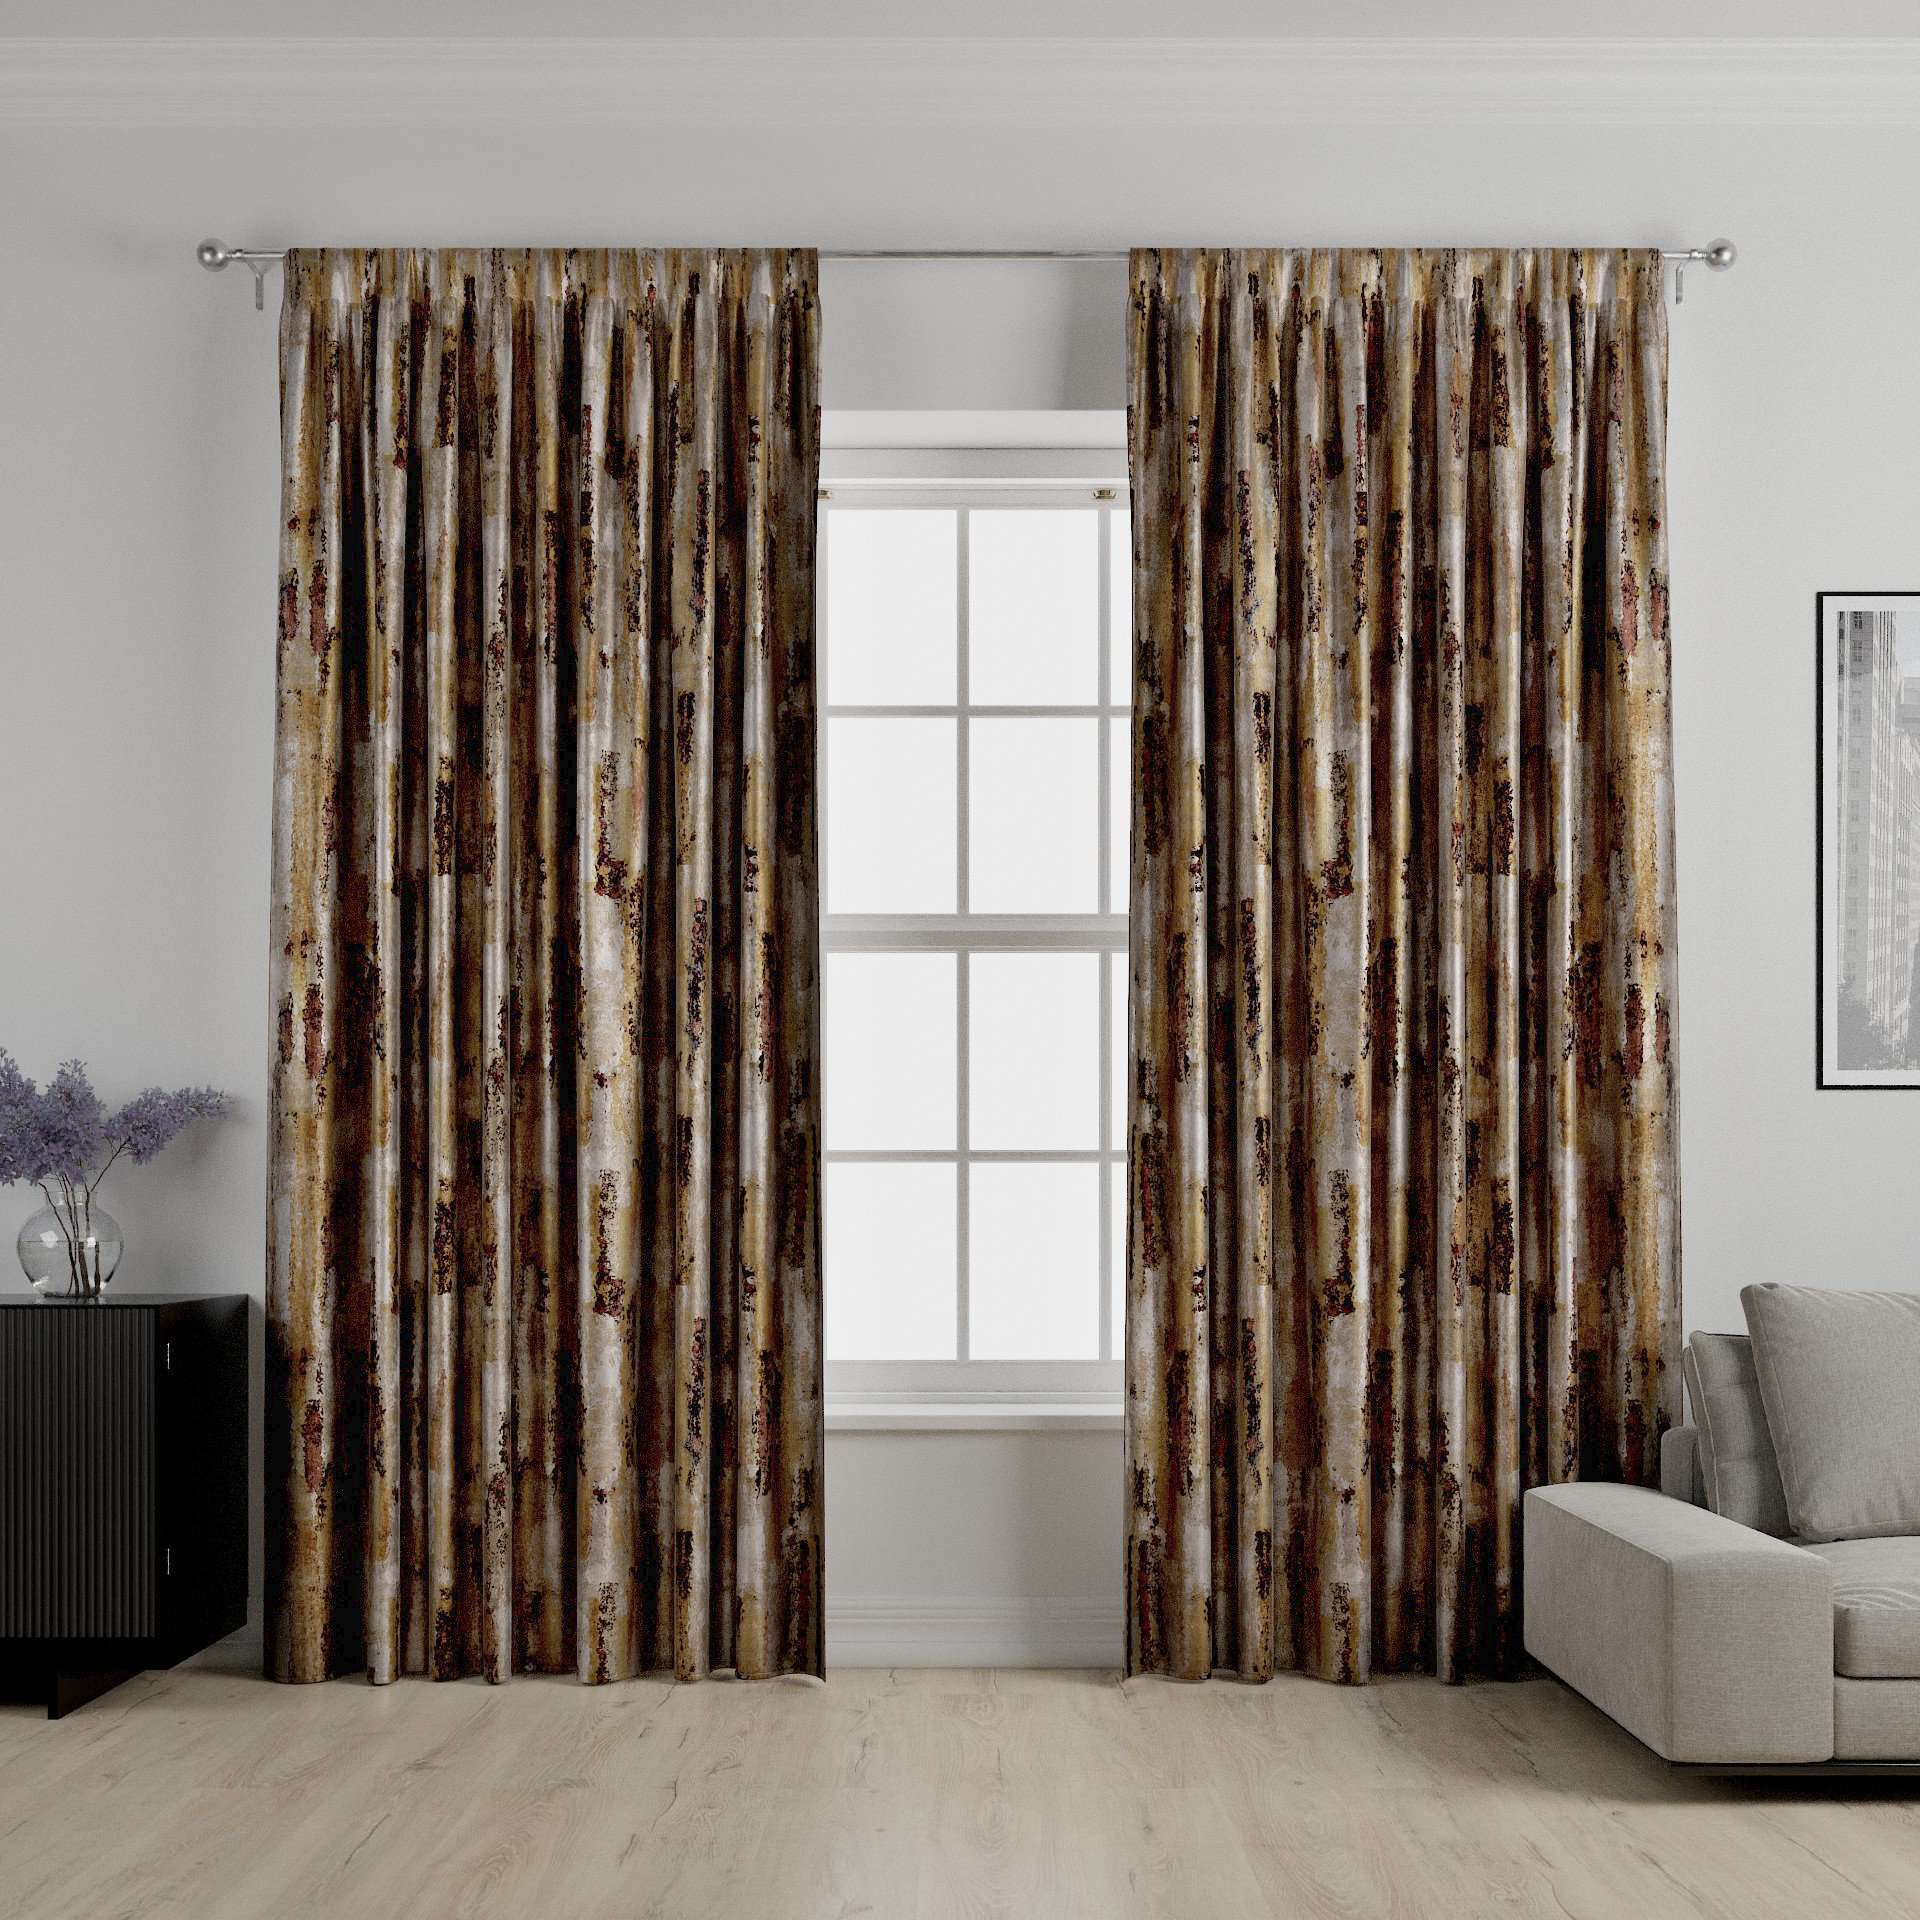 McAlister Textiles Aura Ochre Printed Velvet Curtains Tailored Curtains